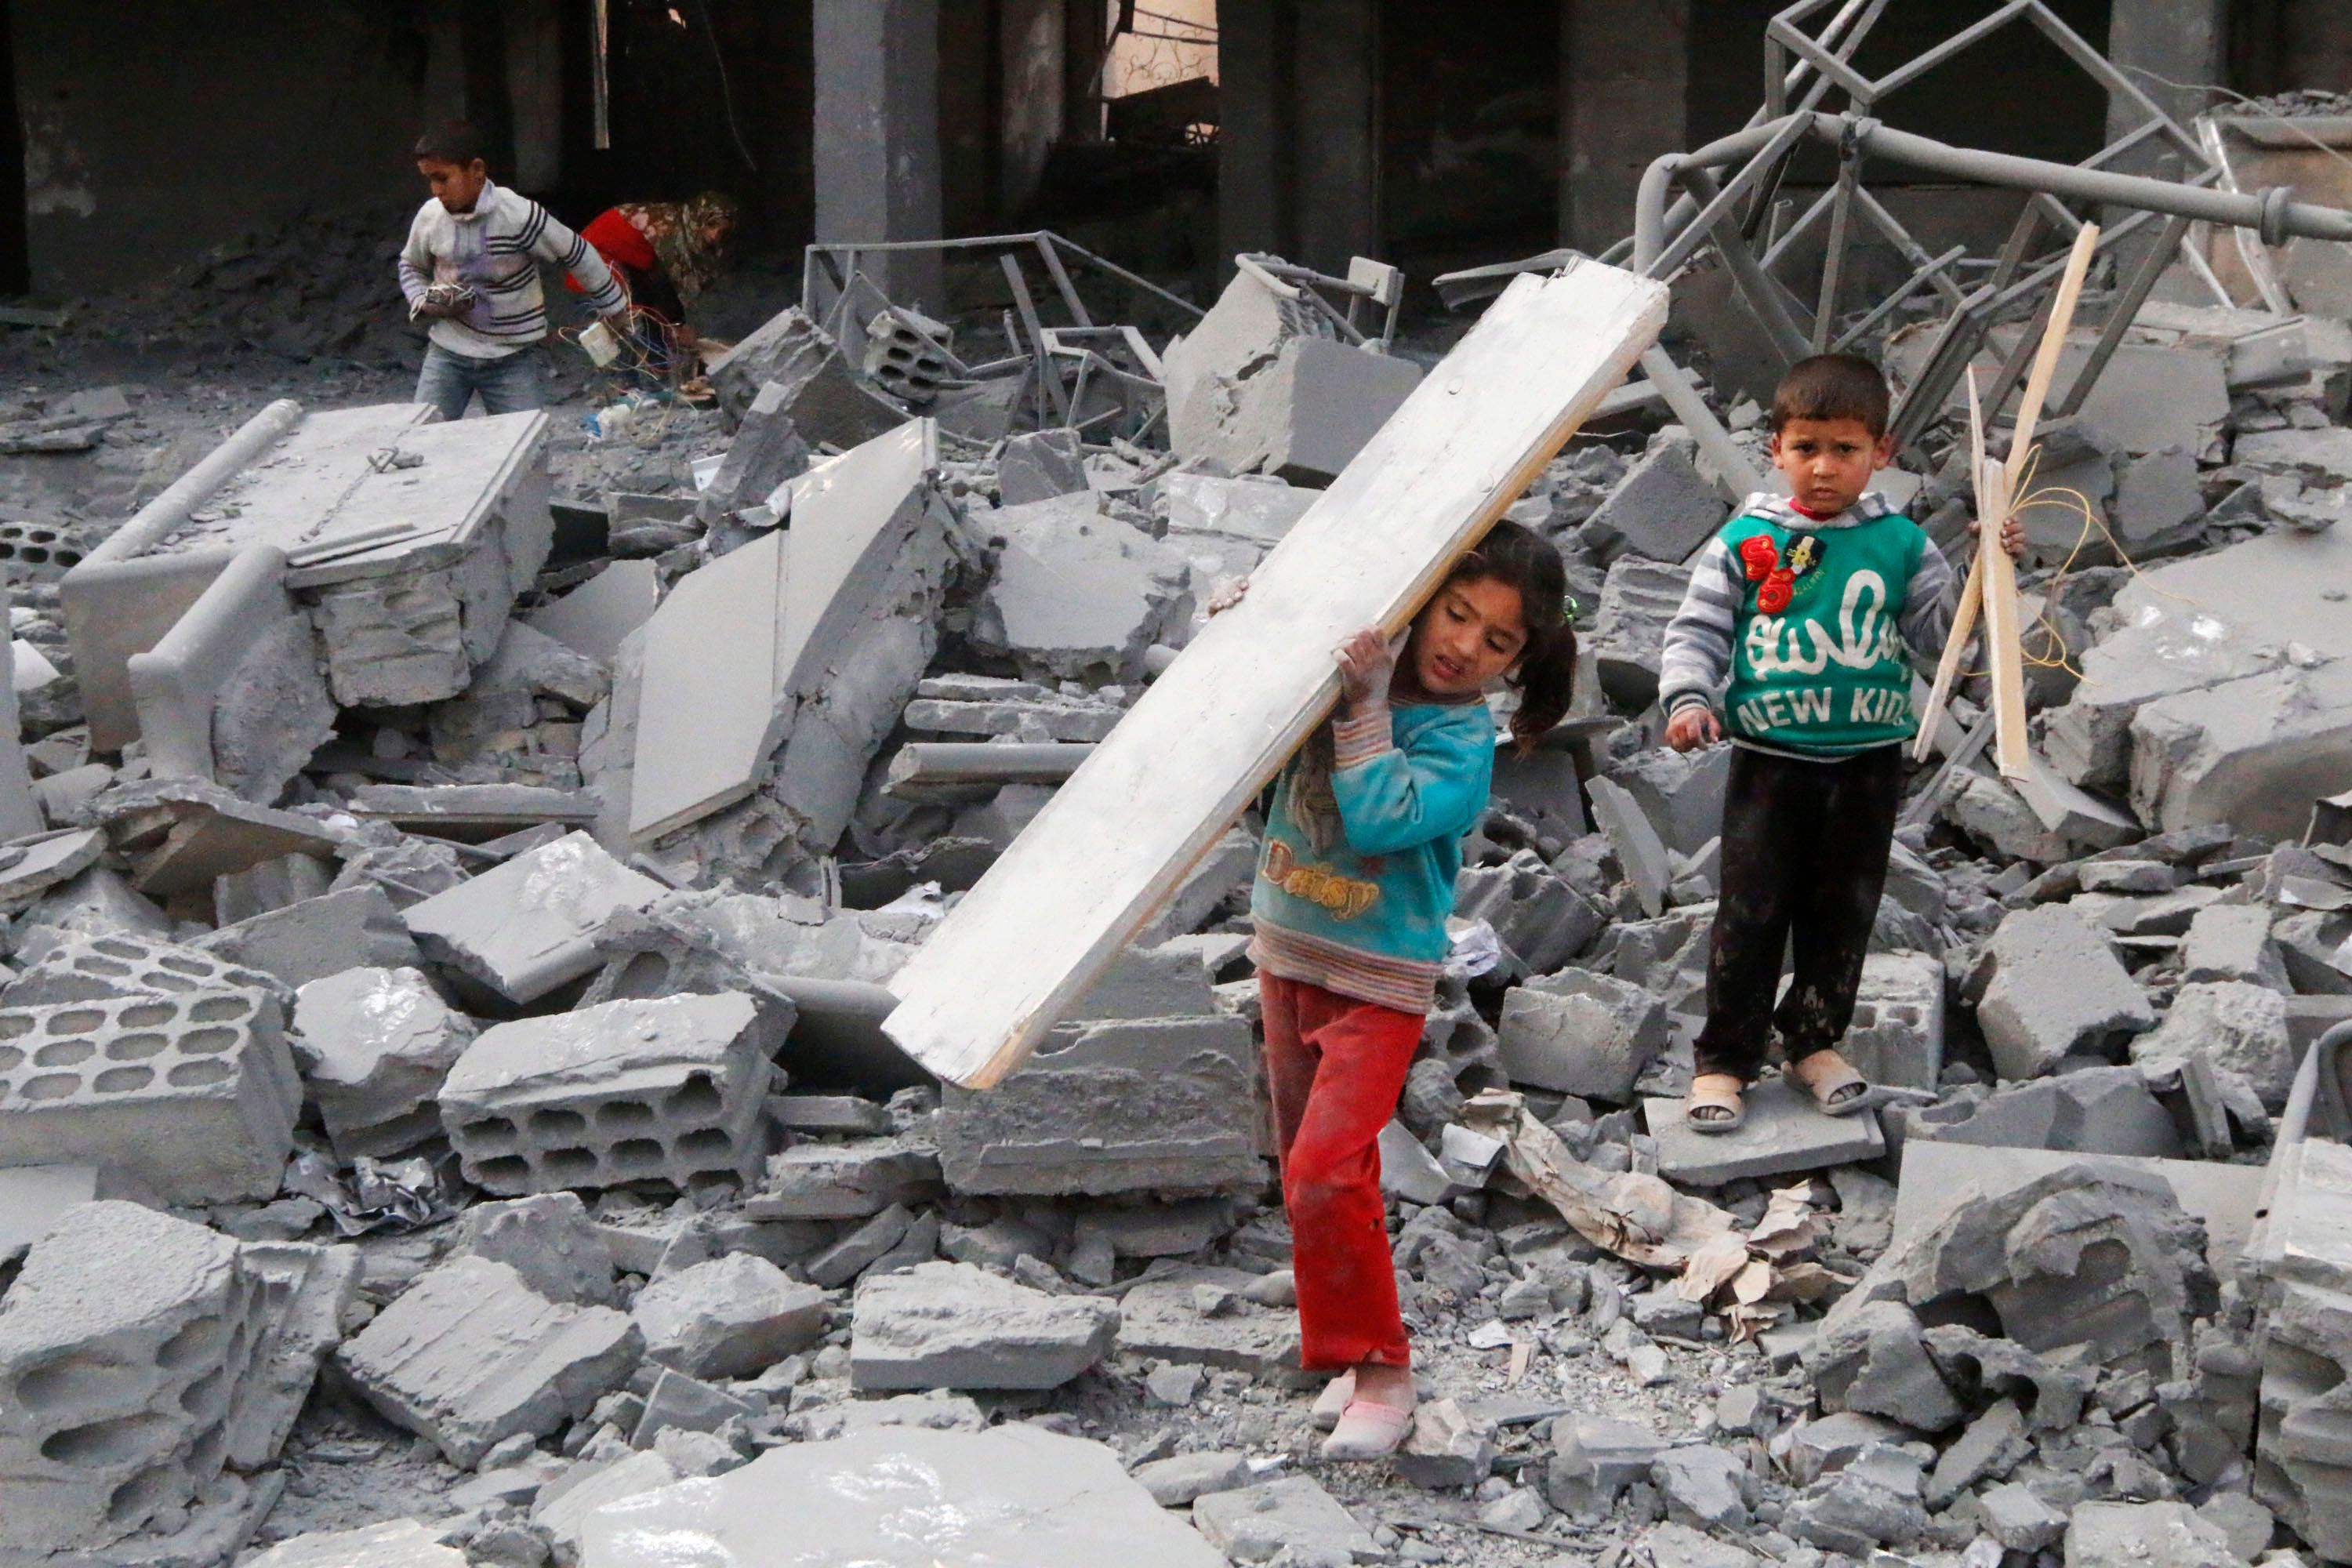 Children collect items from the debris of a school destroyed in what activists said were overnight U.S.-led airstrikes agains